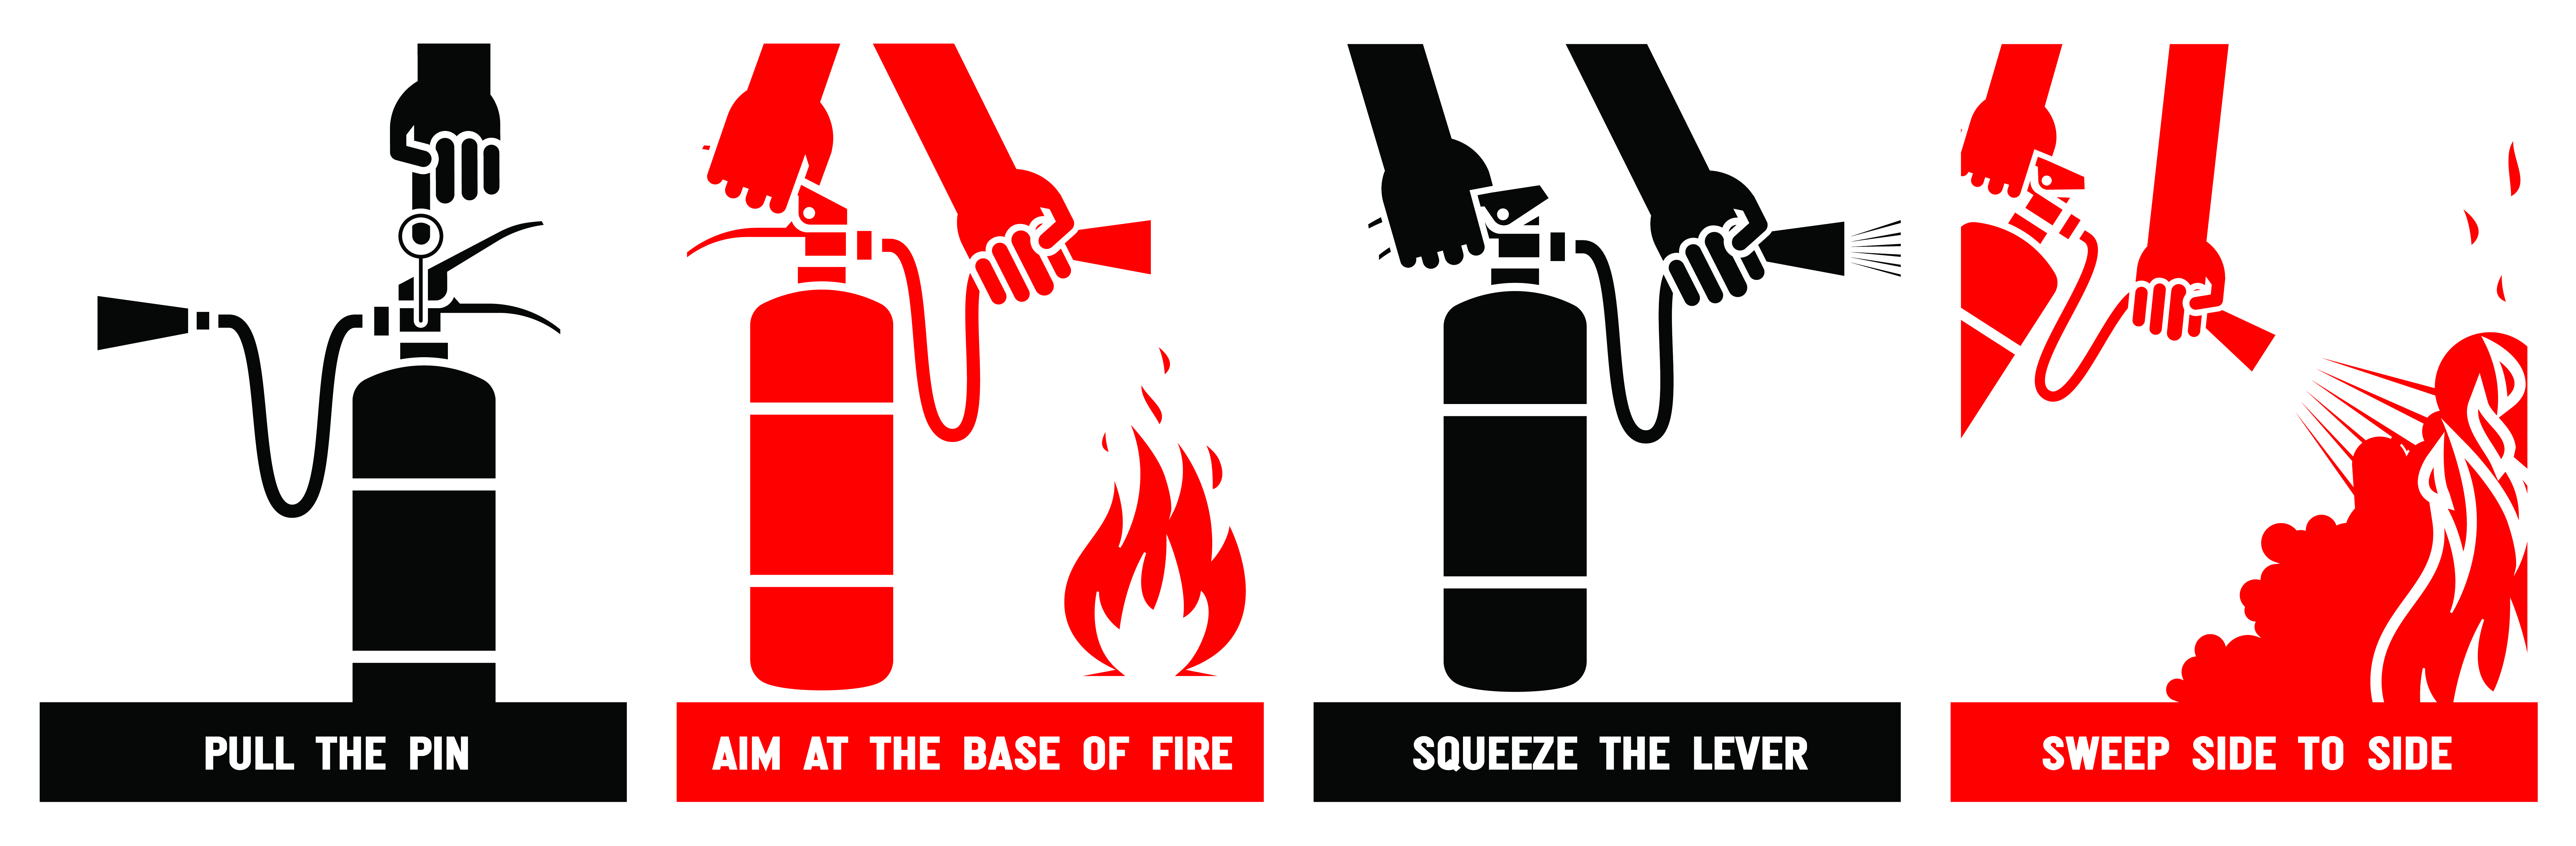 PASS how to use a fire extinguisher